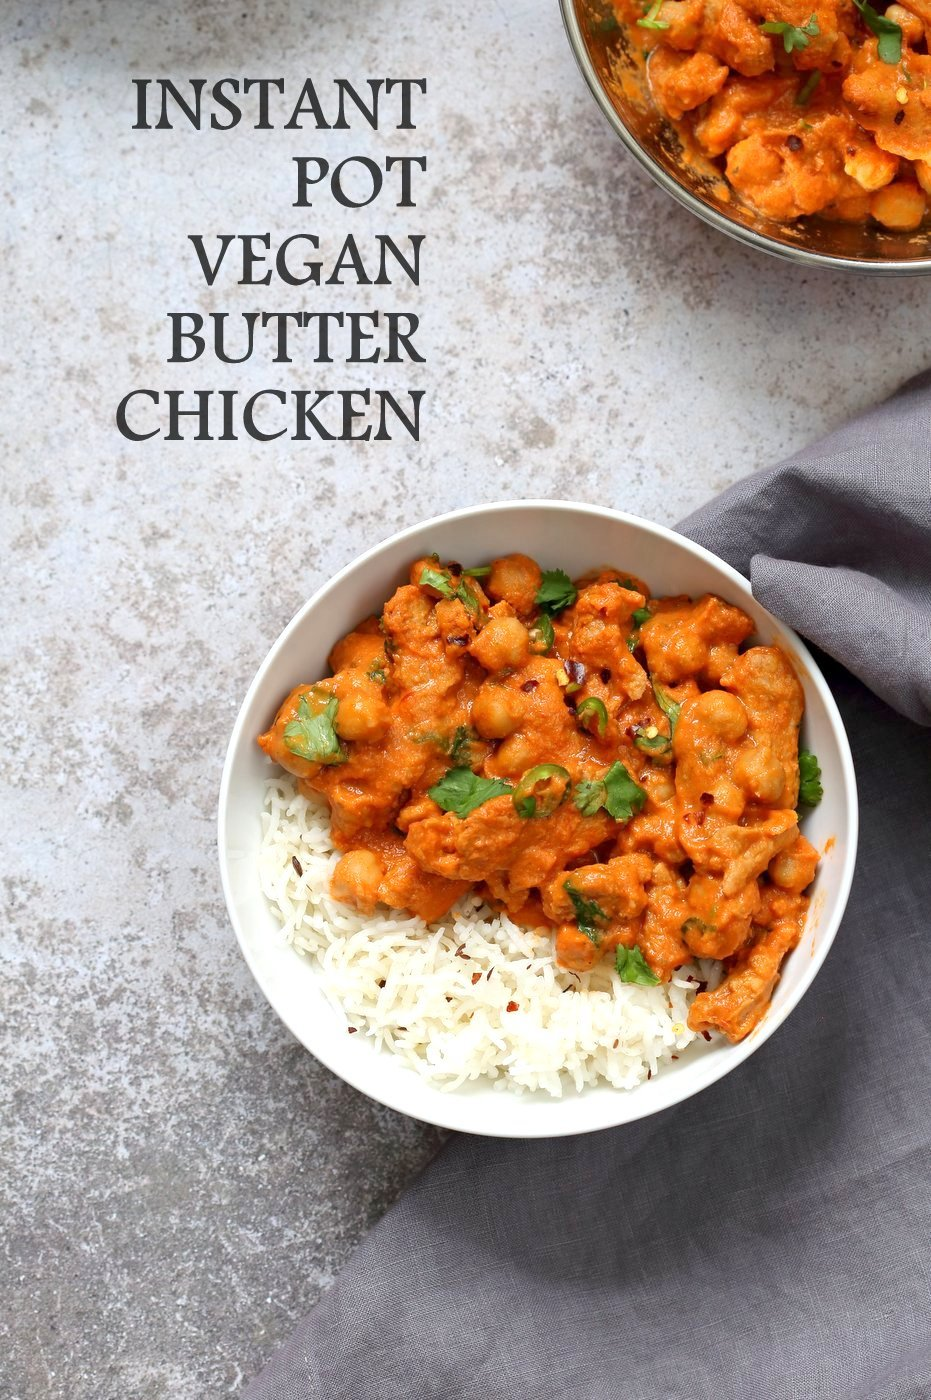 Vegan Butter Chicken in a Bowl with Rice, kept on concrete. Instant Pot Vegan Butter Soycurls and Chickpeas